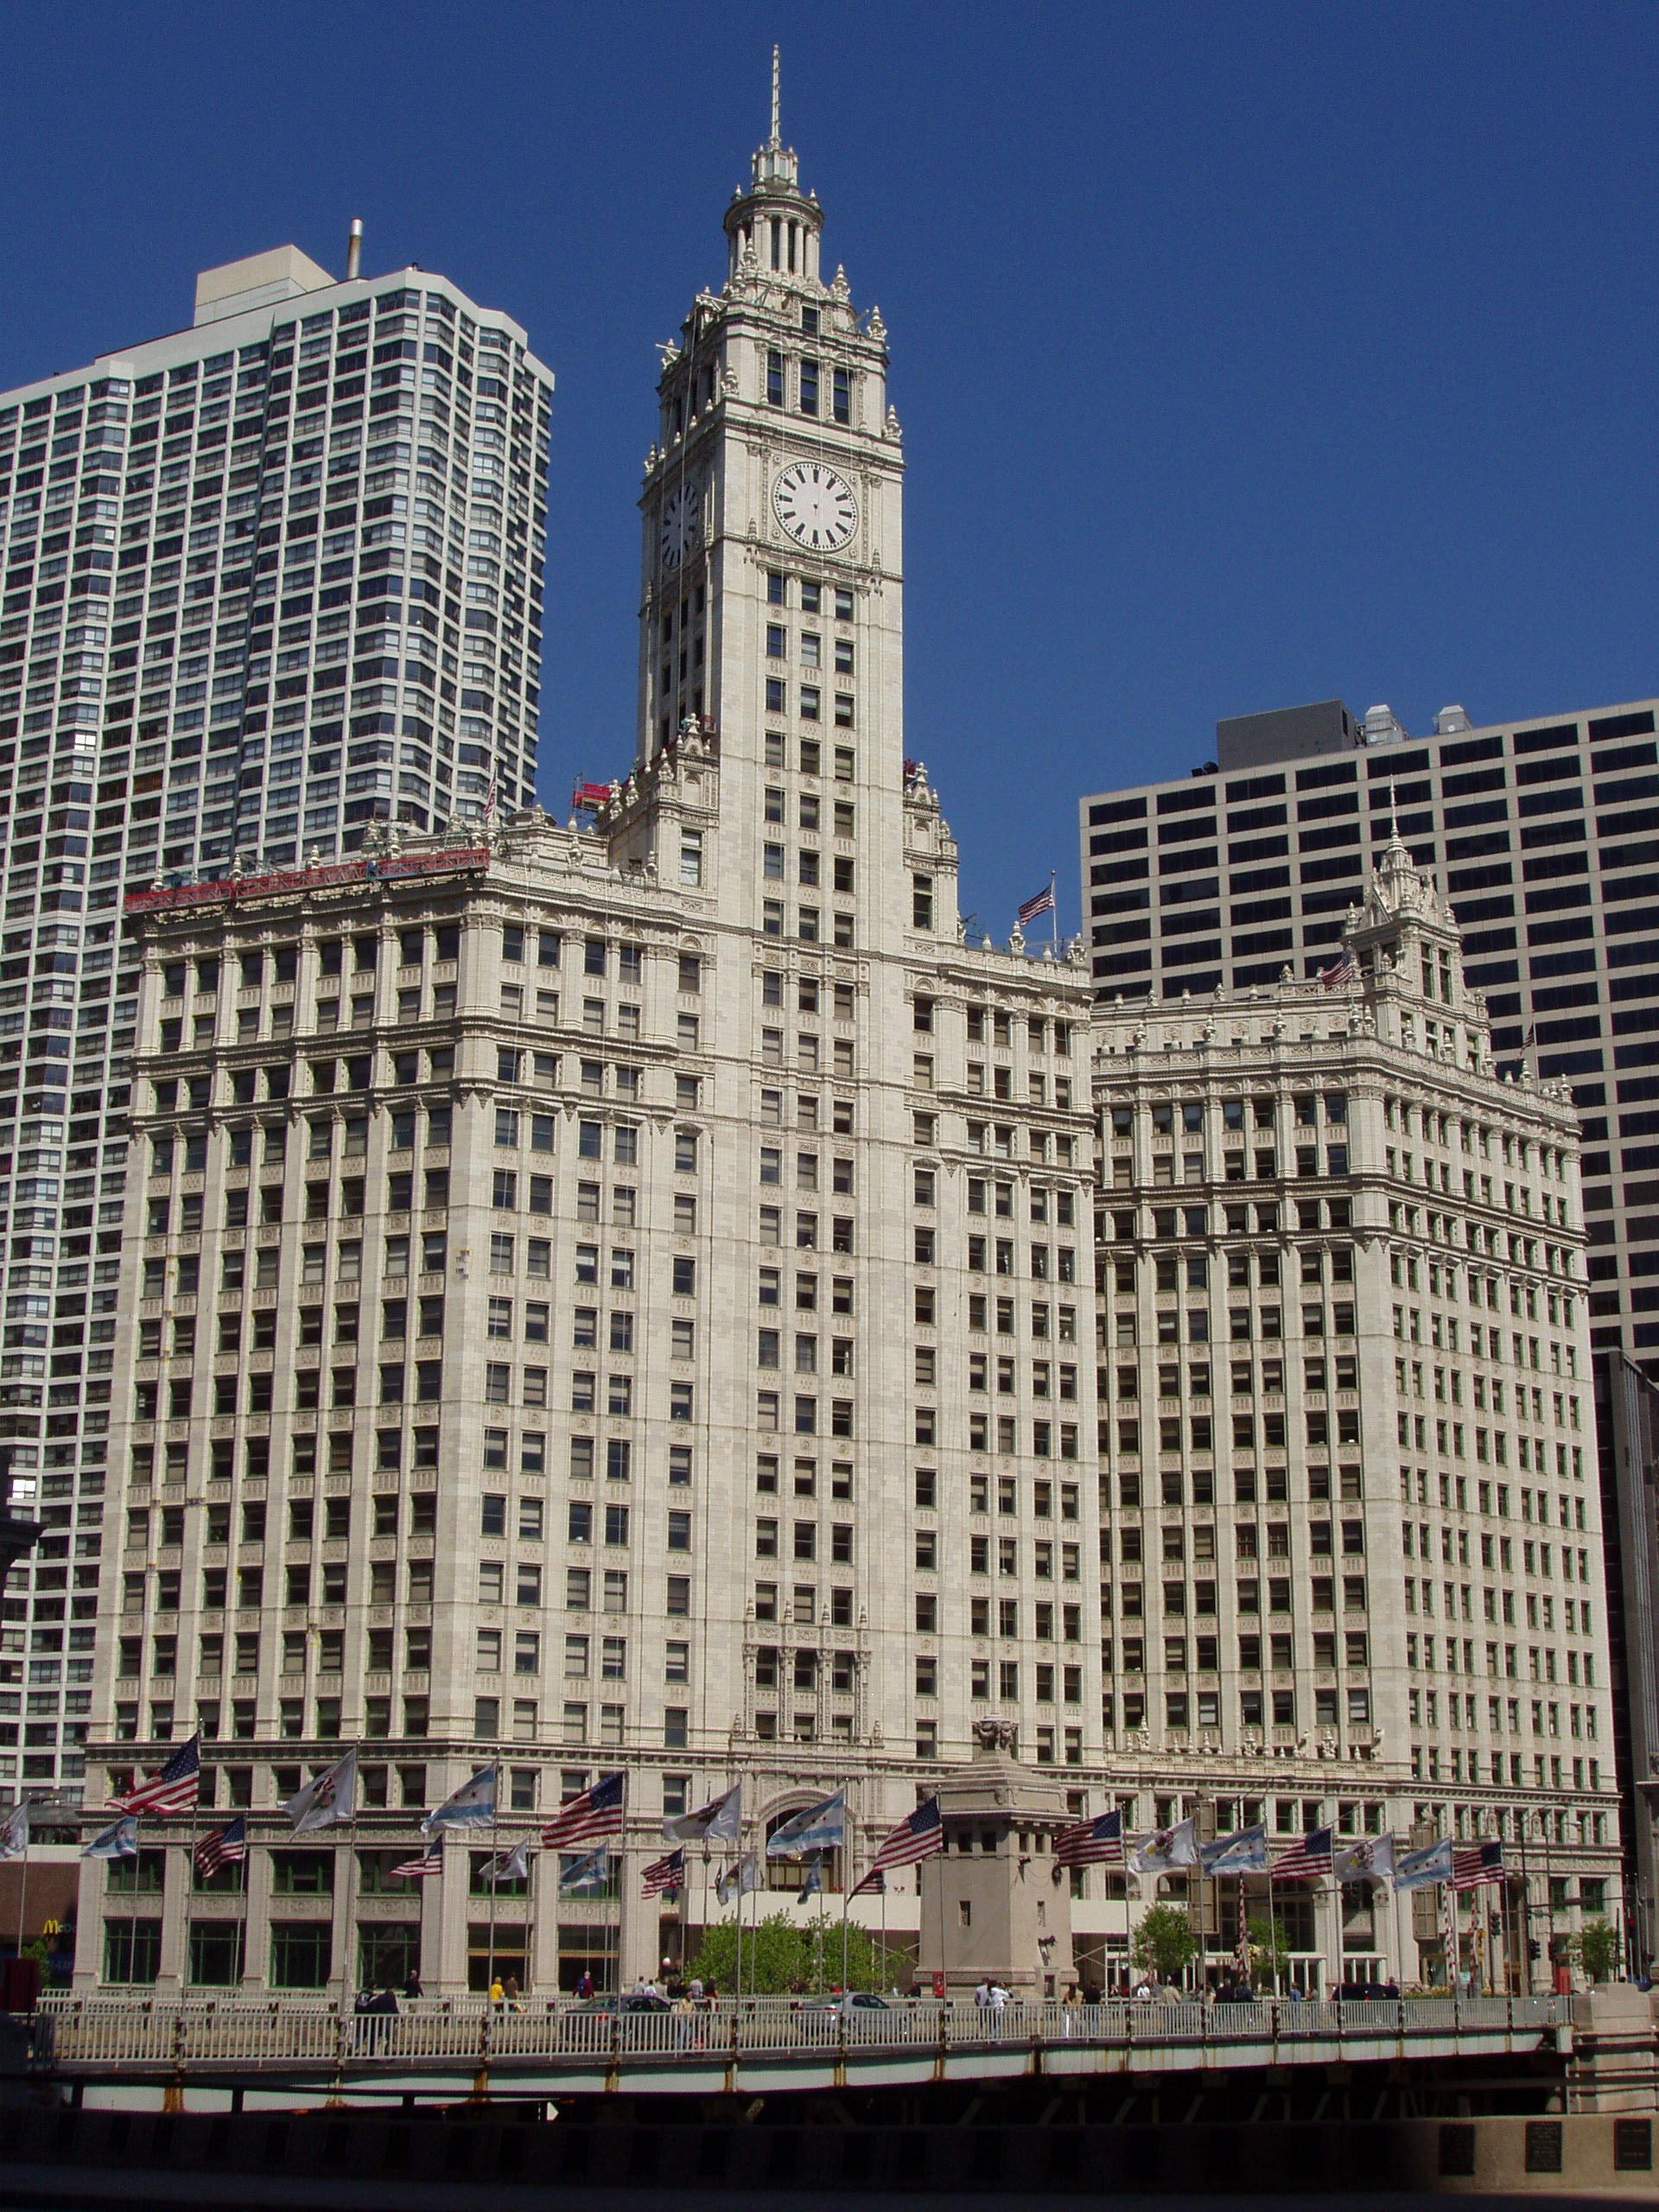 Wrigley_Building_-_Chicago,_Illinois.JPG